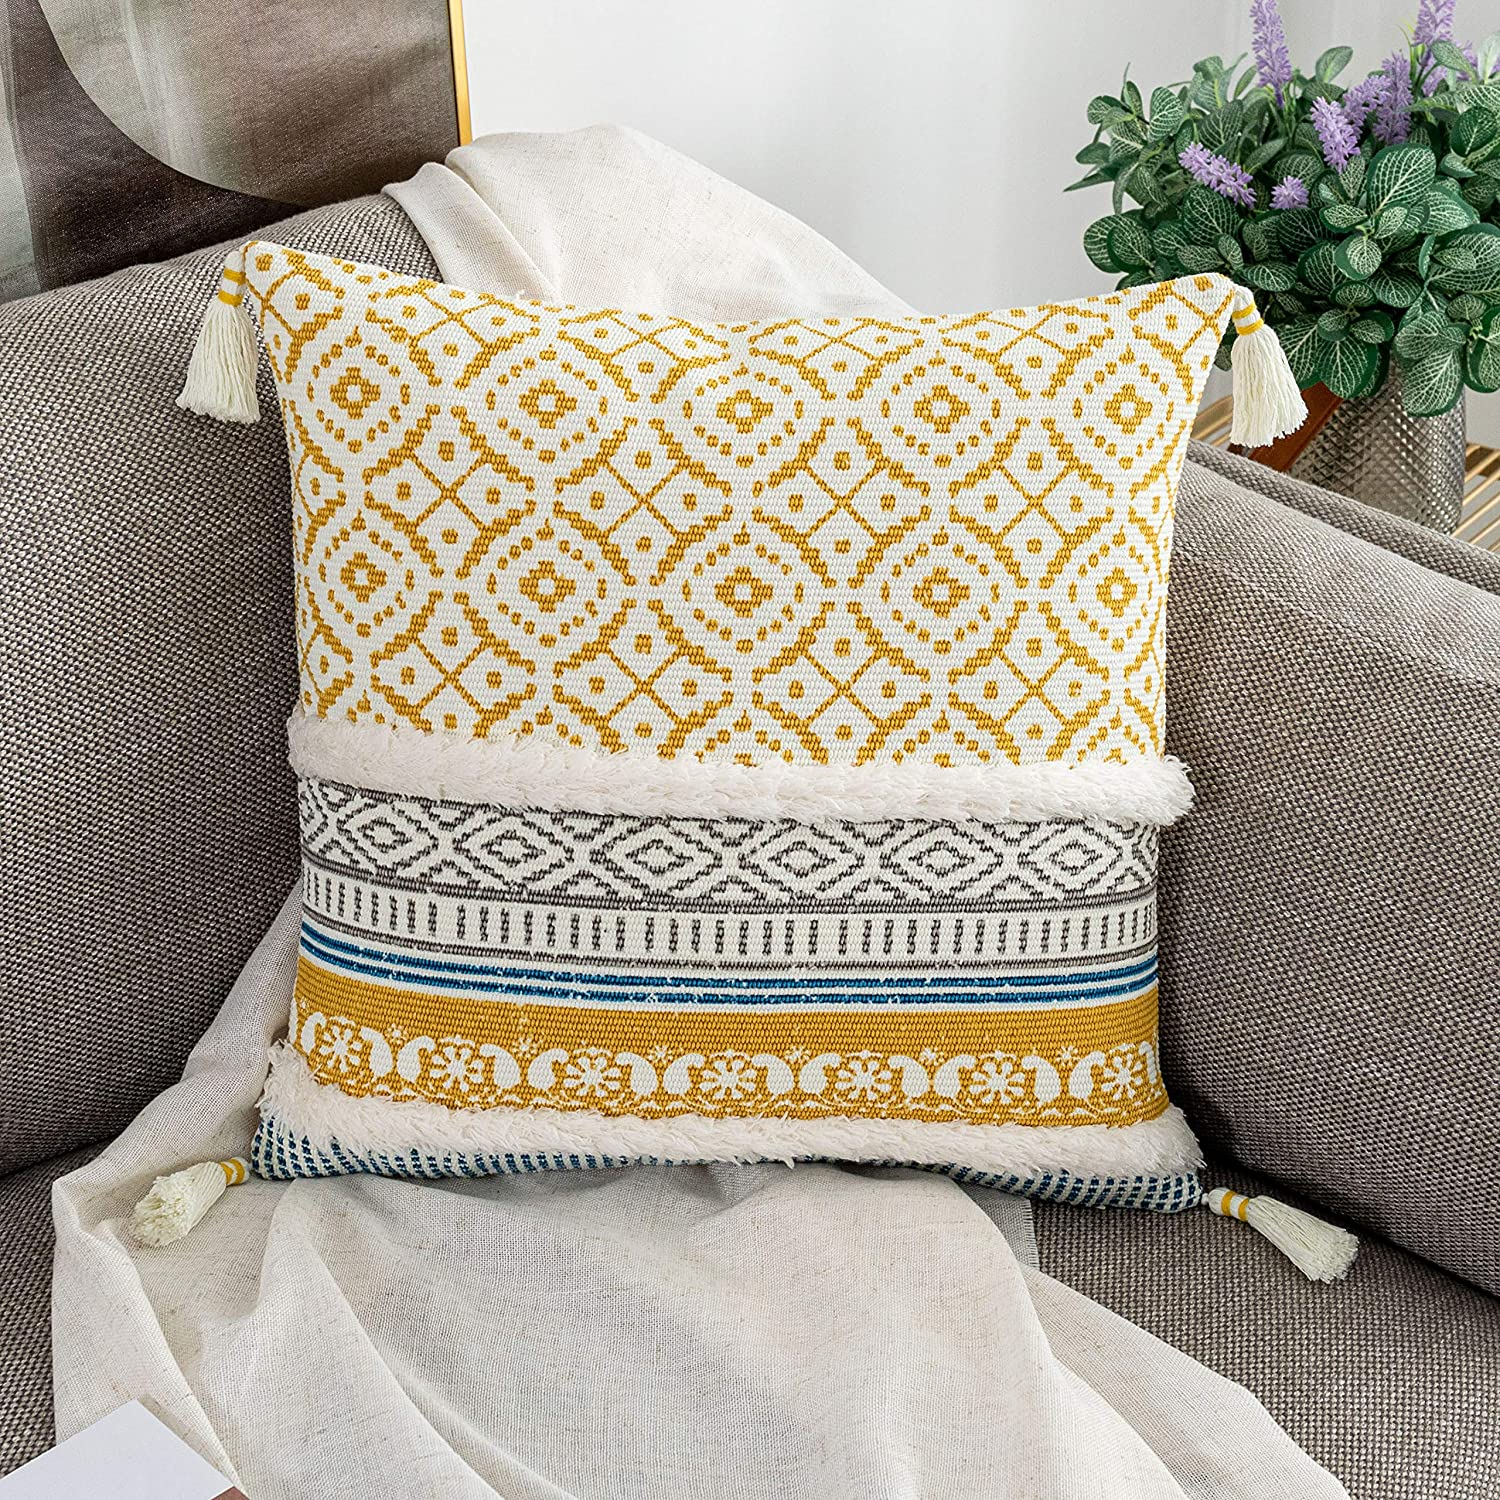 gift OJIA Throw Pillow Cover Boho 2021 new Decorative Tassel Accent Co